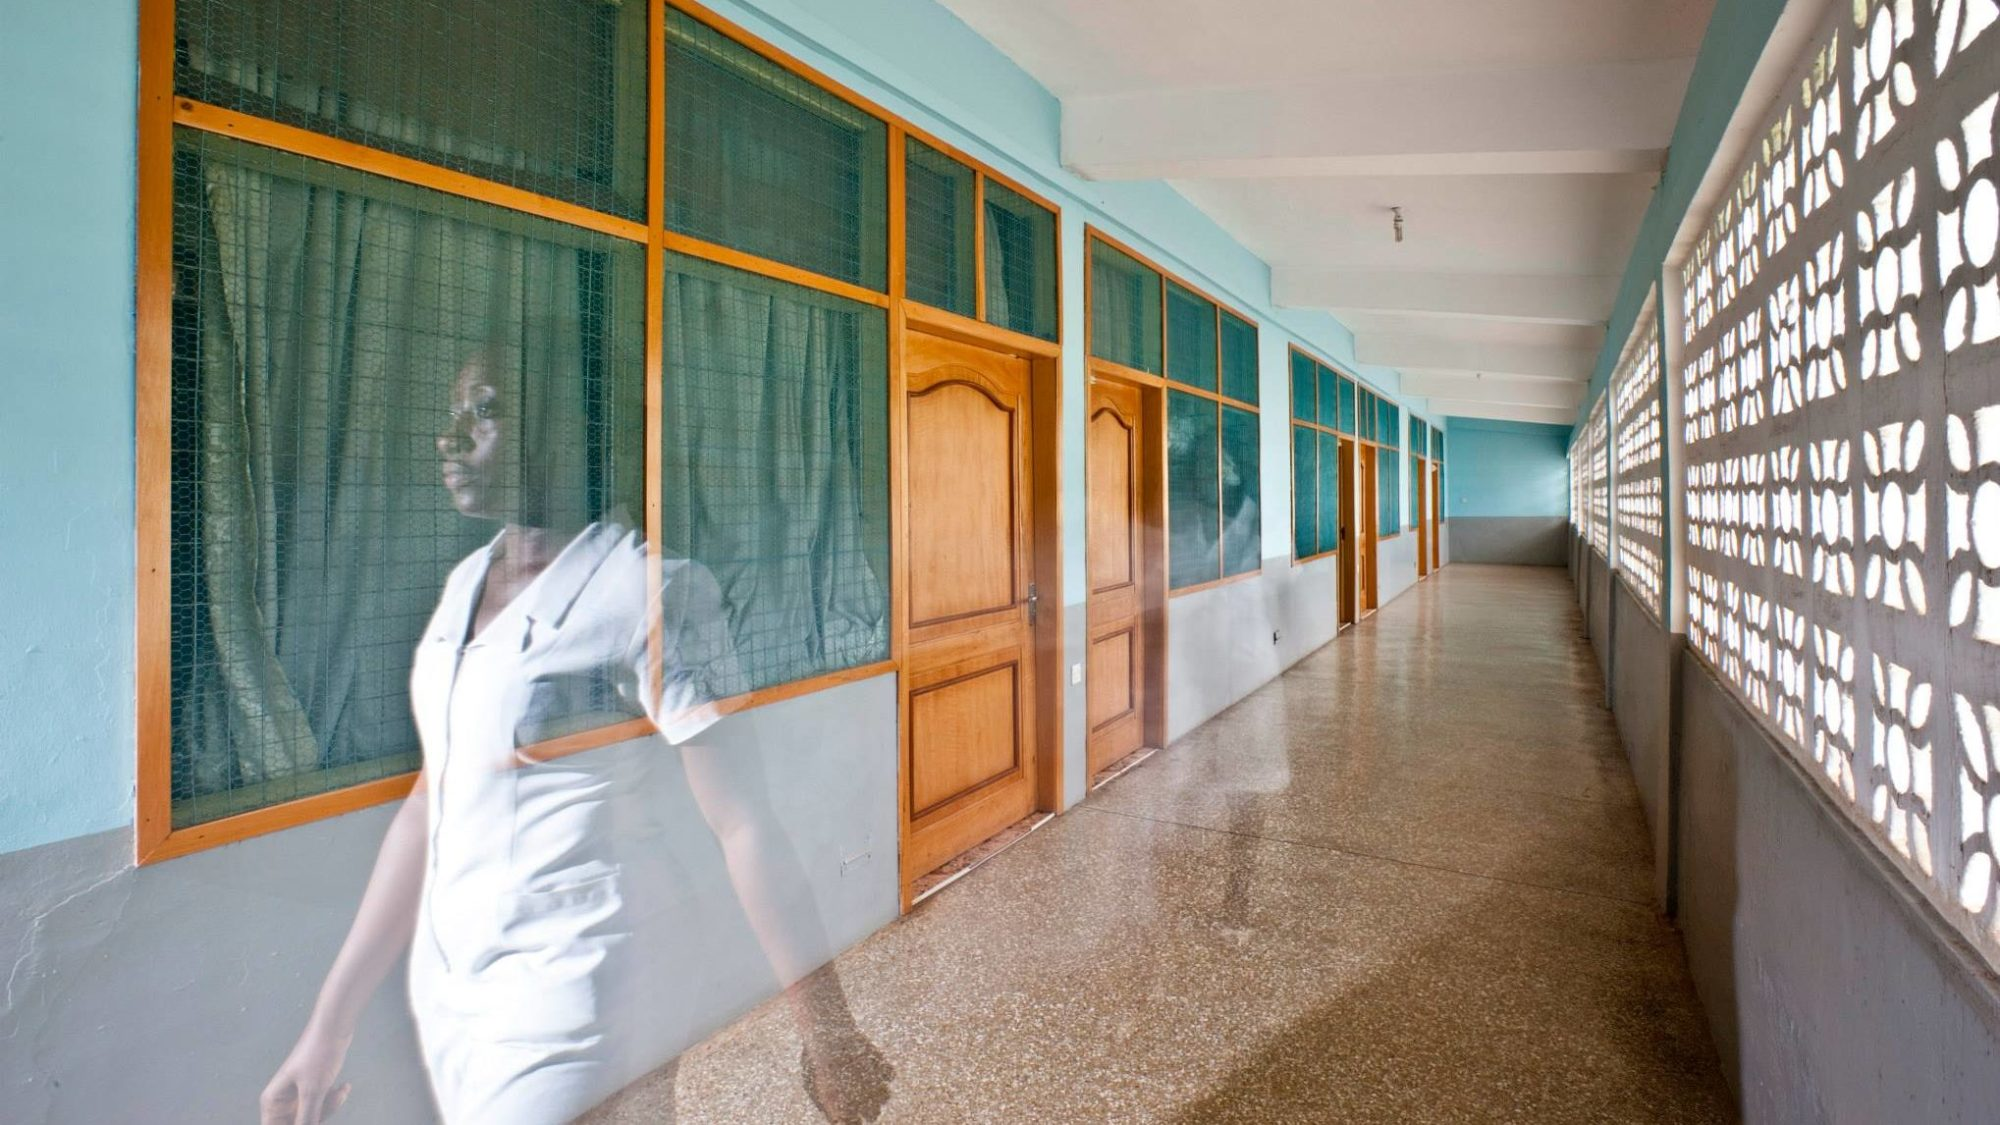 A small number of individual rooms are available to patients in fee-for-service VIP wards at a public psychiatric institution in Ghana. The country has a shortage of mental health professionals, and local groups, like BasicNeeds Ghana, are working to make sure patients have access to treatment. (Photo courtesy of Nyani Quarmyne and BasicNeeds Ghana.)